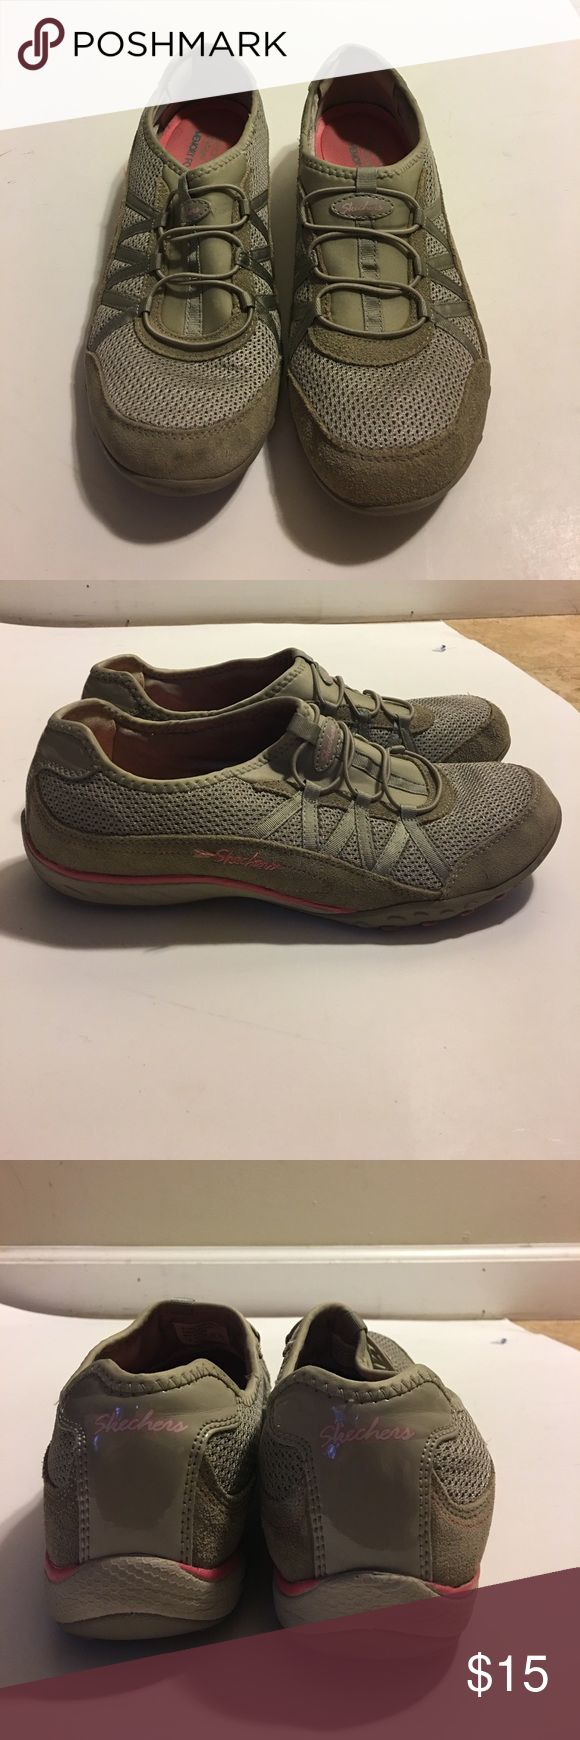 Skechers Relaxed Fit Memory Foam Sneakers size 10 Beige / tan / neutral Skechers Relaxed Fit Memory Foam Sneakers size 10.  Shoes have scuff marks, stains, piling and show signs of wear.  Refer to photos to view condition.  From a smoke free home. Skechers Shoes Sneakers